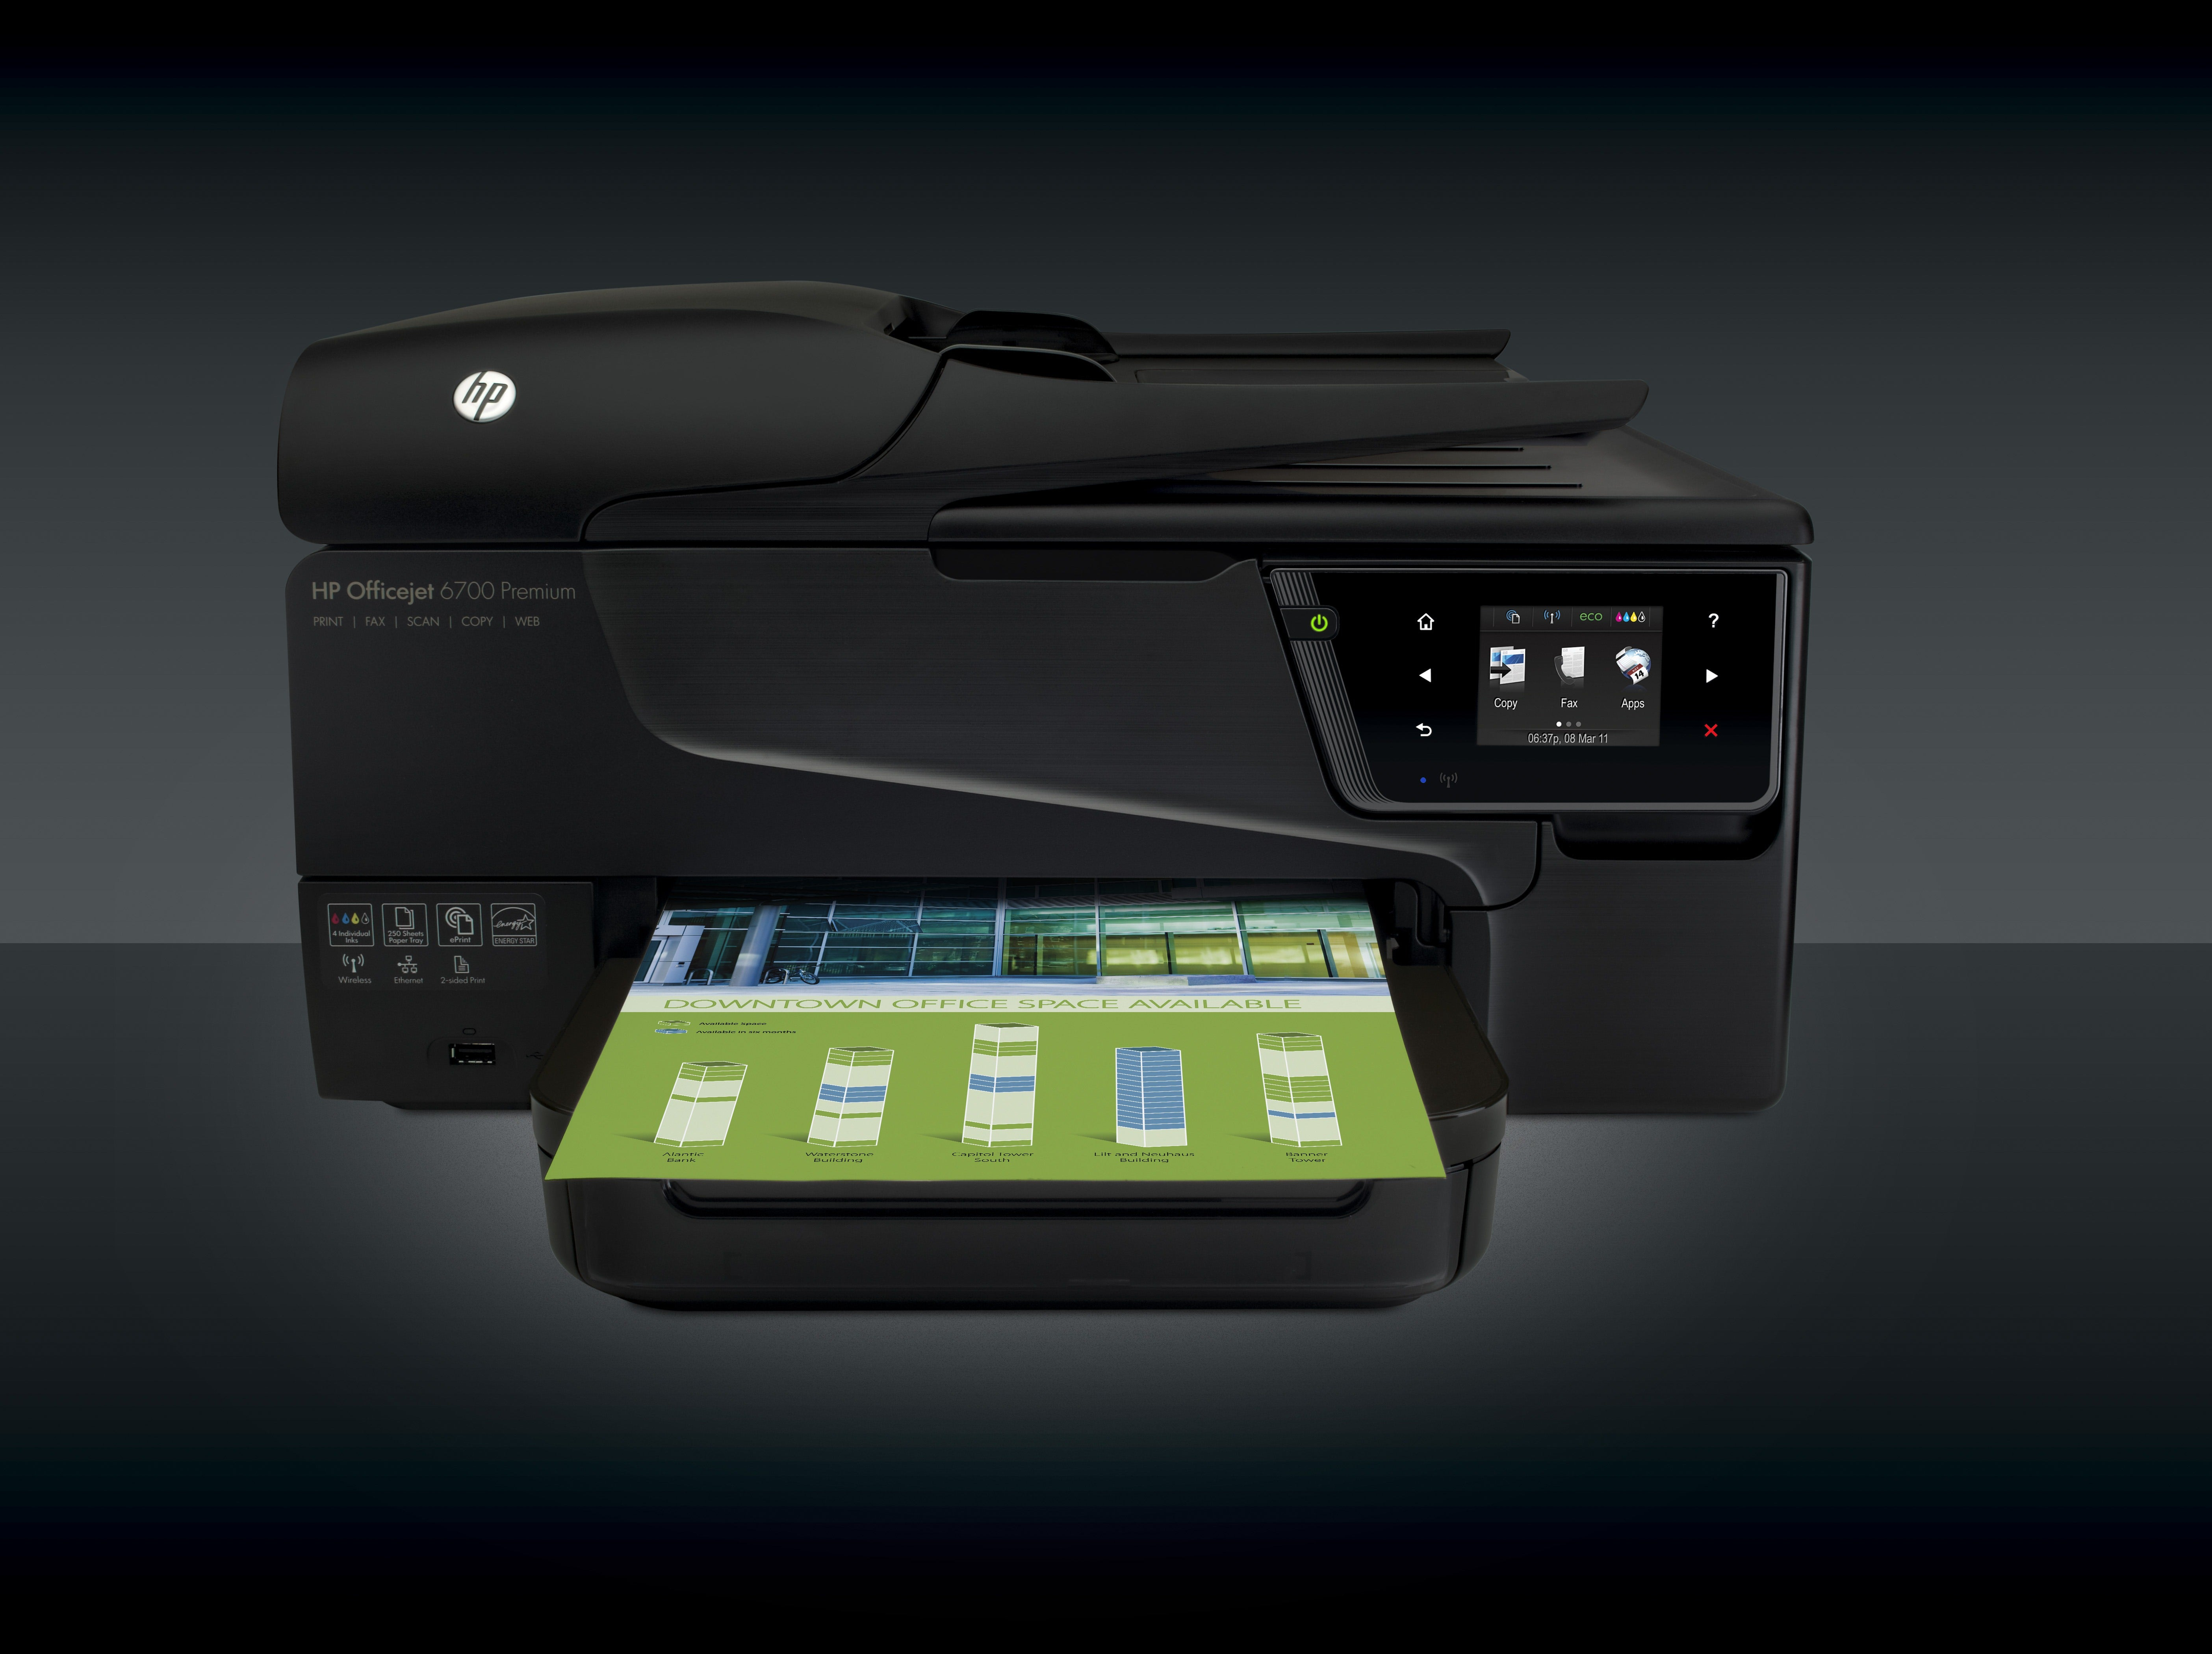 HP PHOTOSMART C4288 ALL-IN-ONE PRINTER WINDOWS 7 DRIVER DOWNLOAD